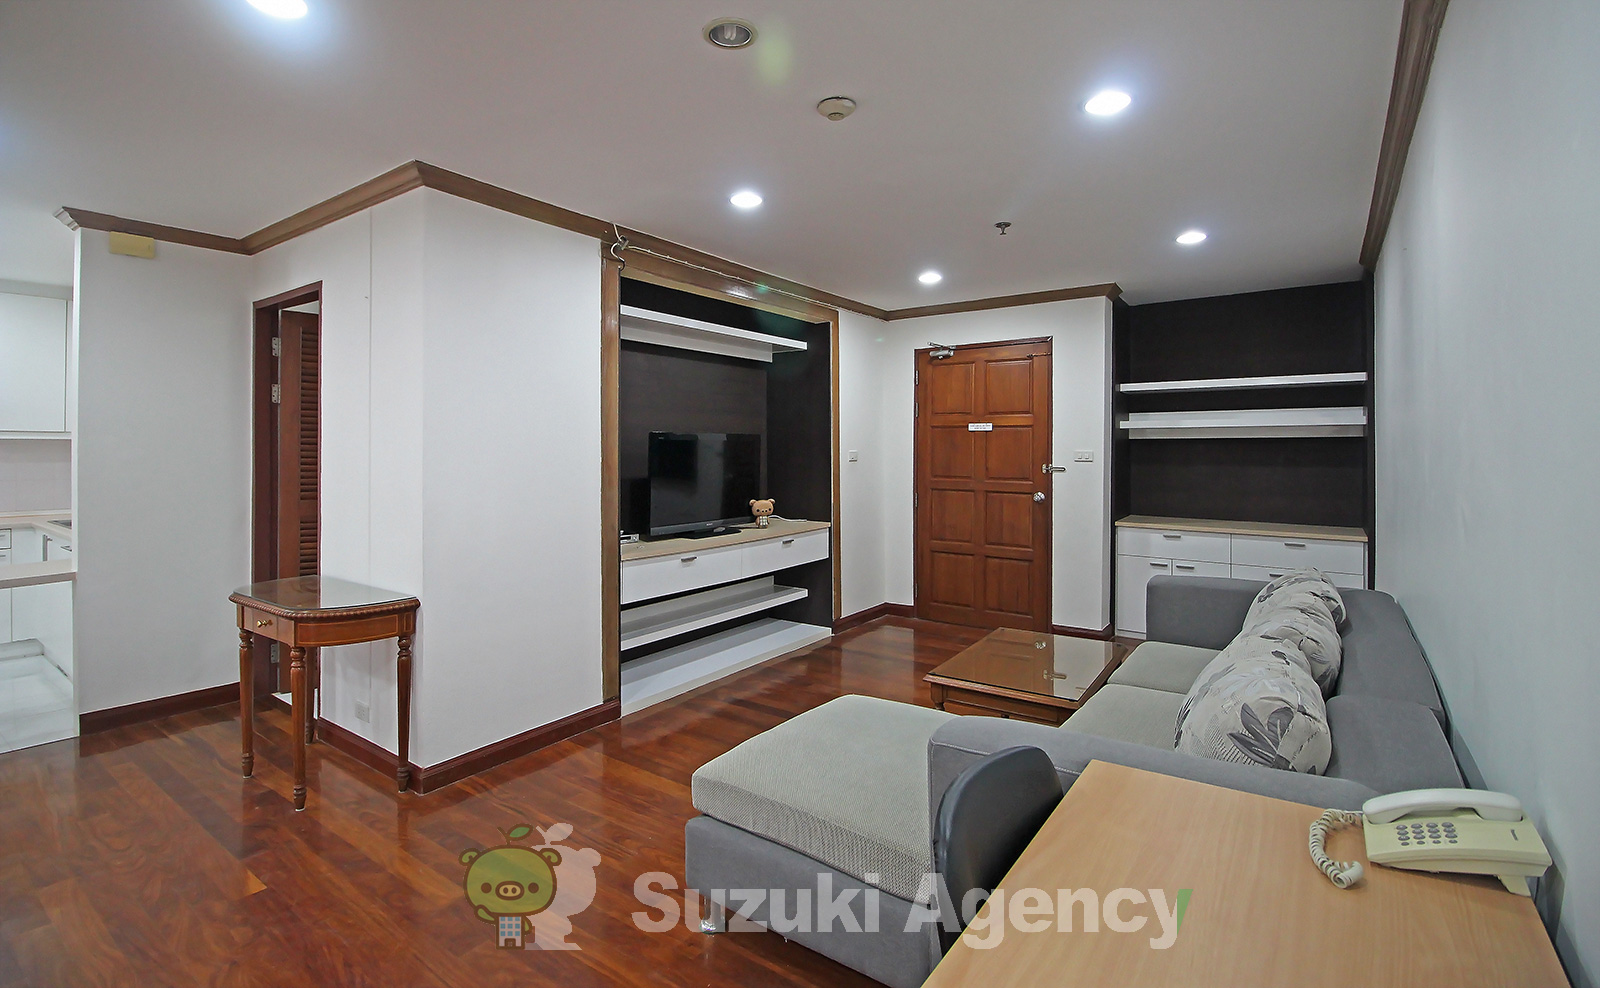 Baan Suanpetch:2Bed Room Photos No.4